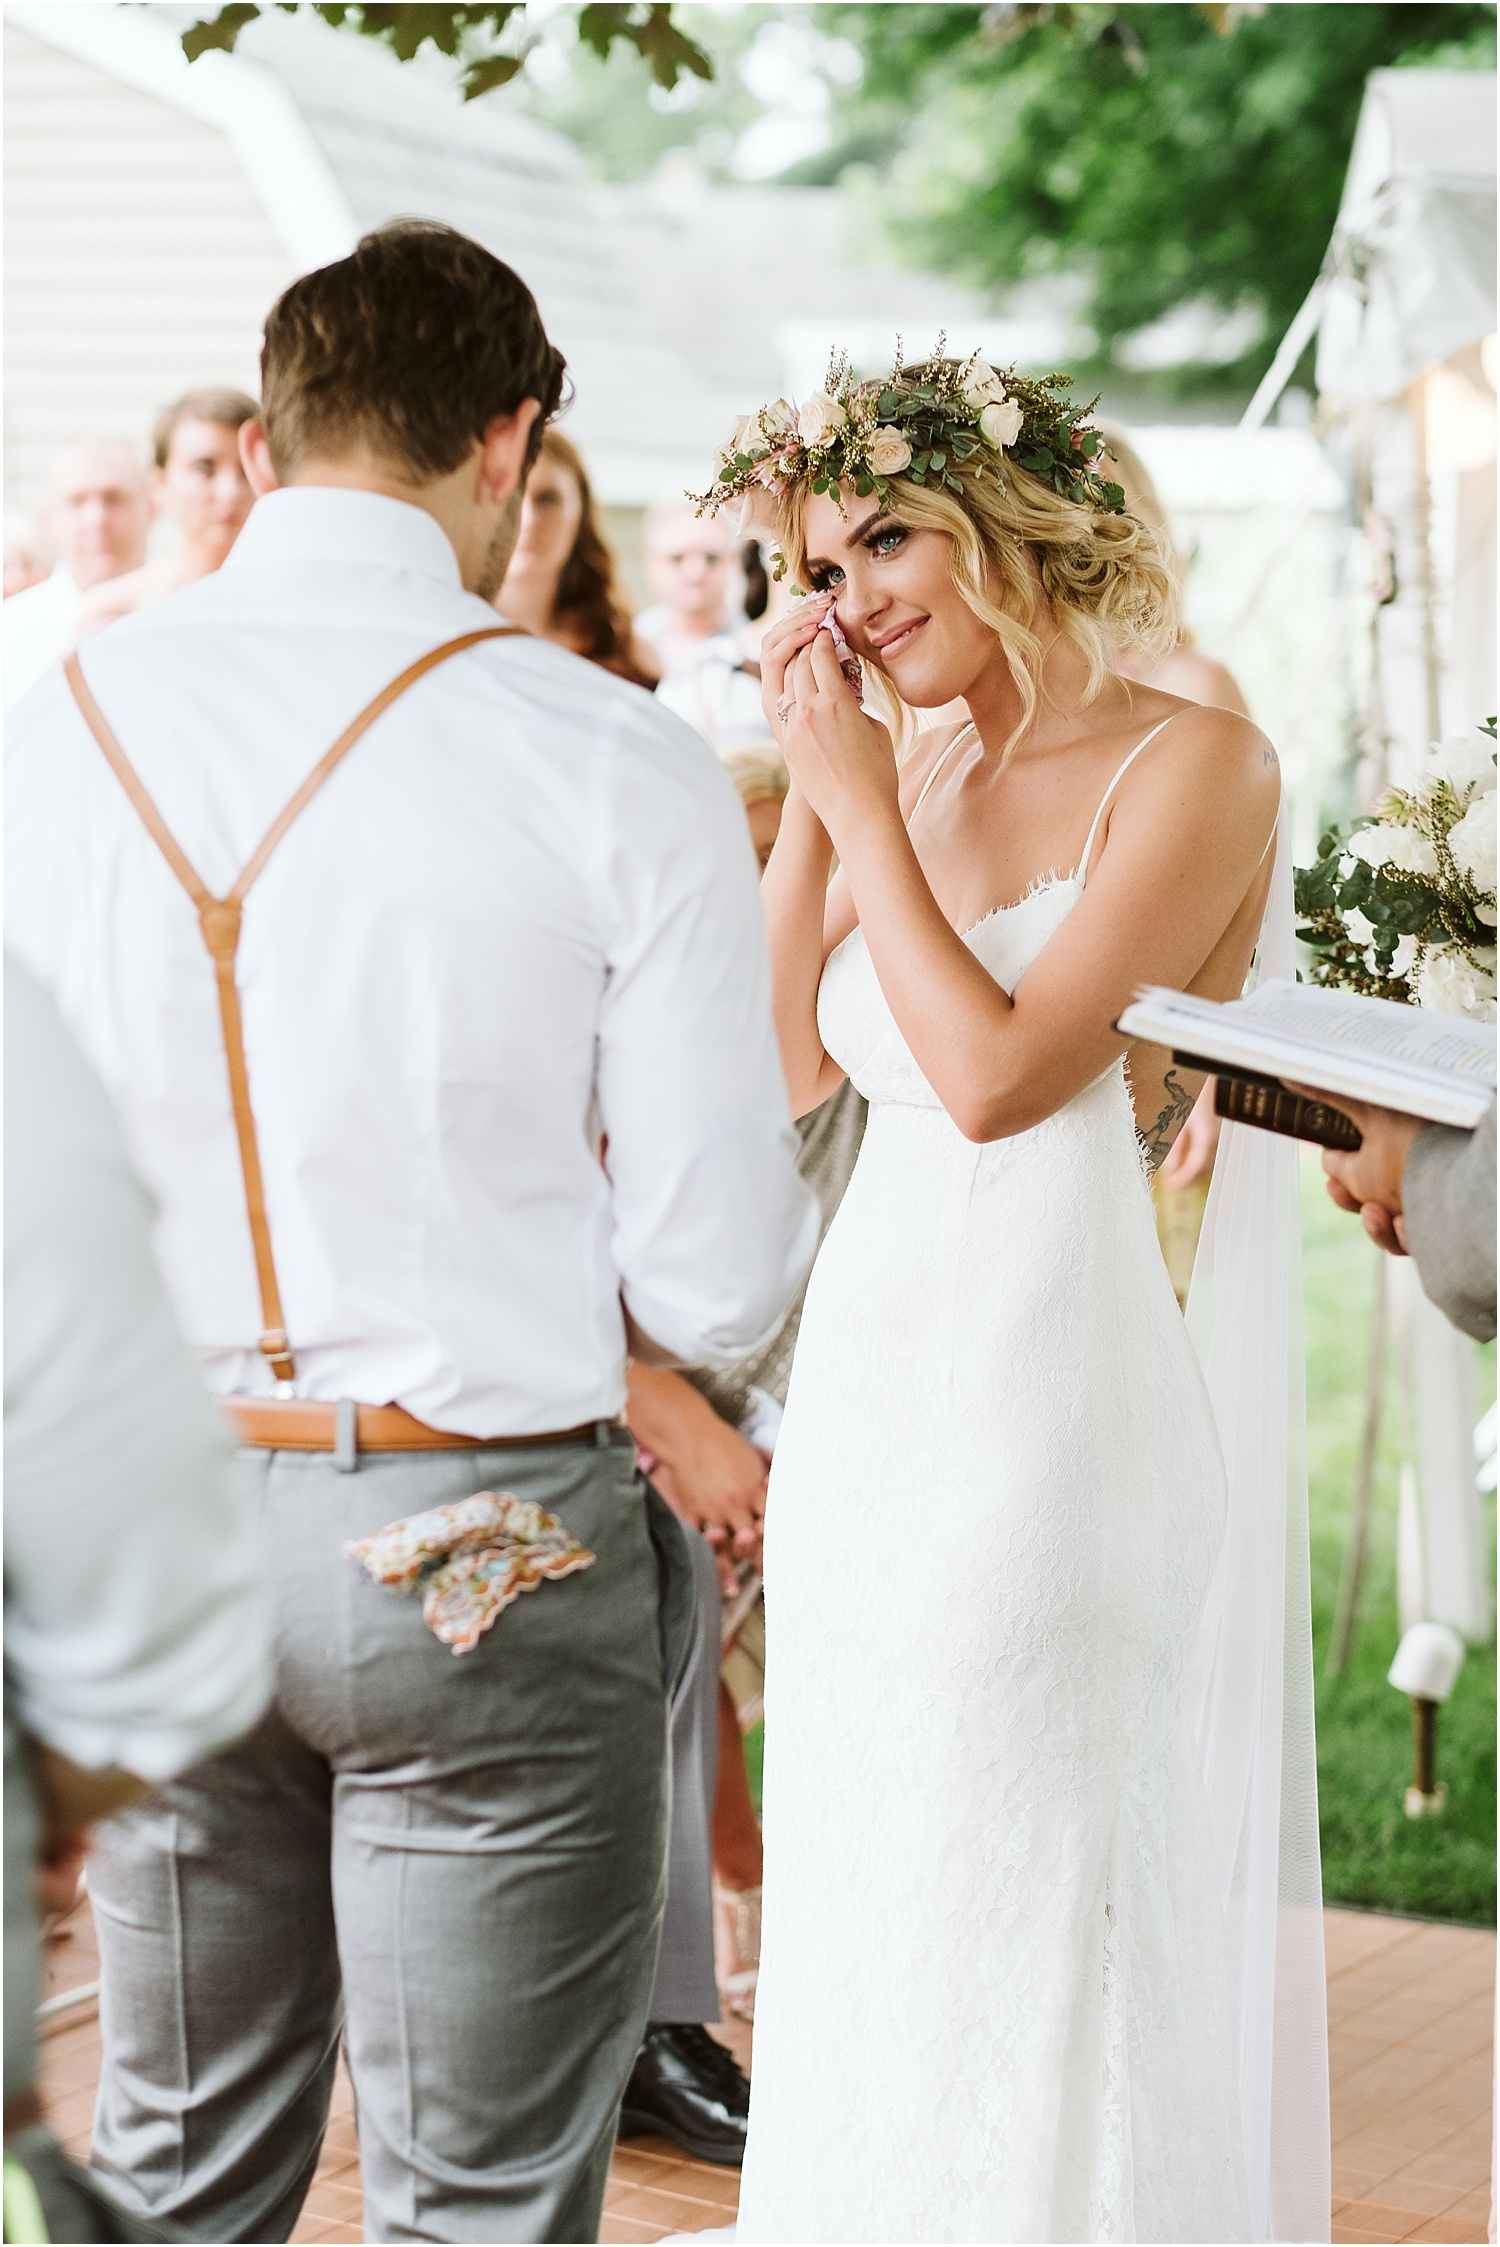 j-b-joyful-happy-smile-dancing-backyard-diy-boho-chic-wedding_0039.jpg